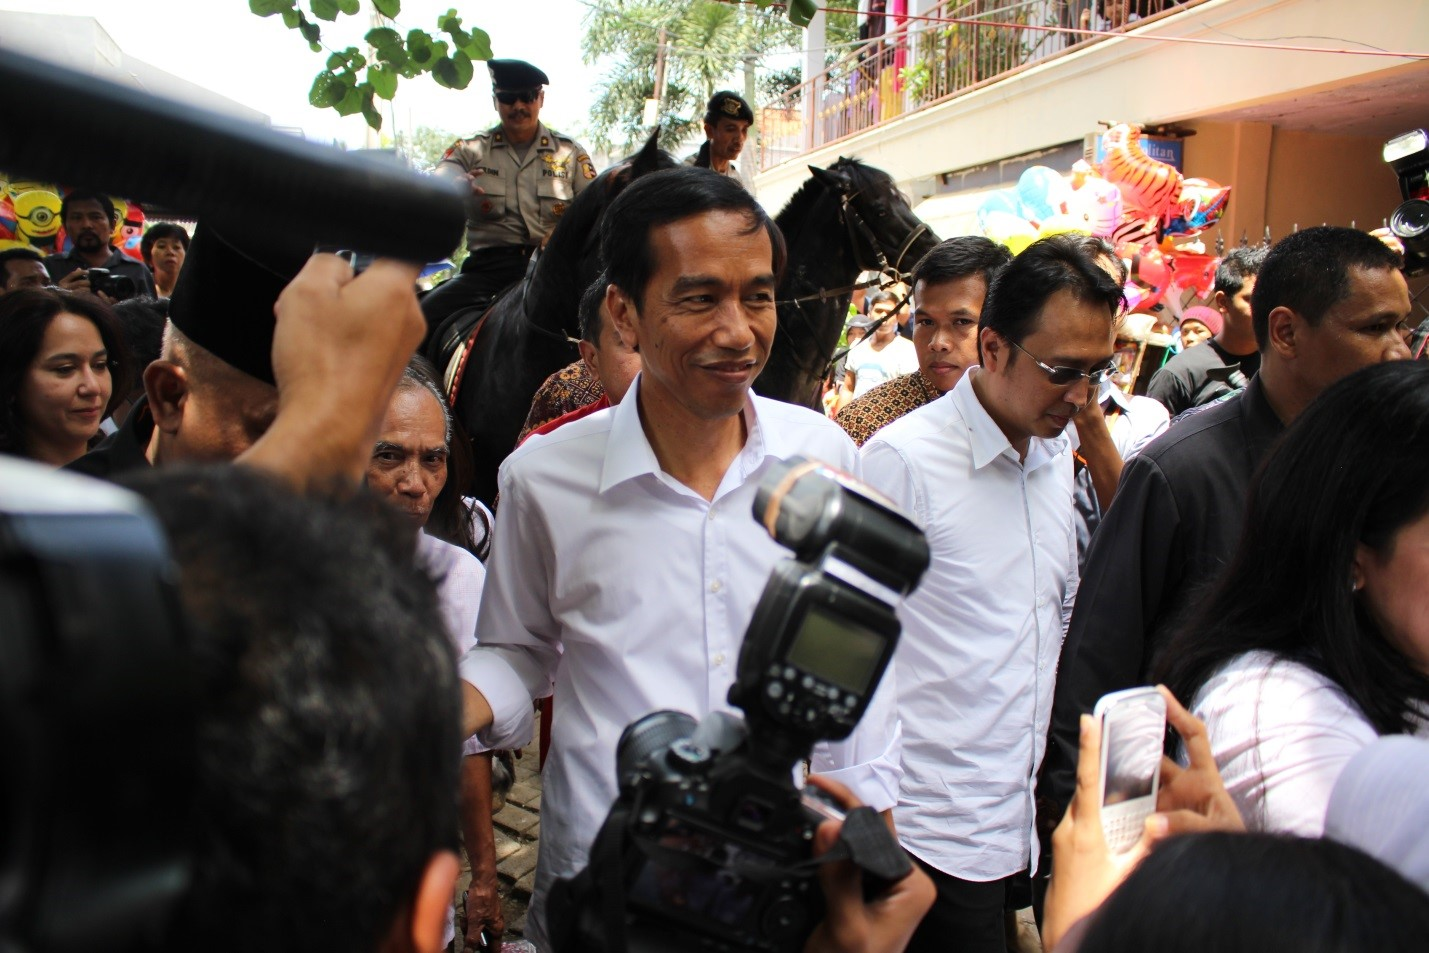 © Photo of (then not-yet President ) Joko Widodo during balloting for Legislative Elections, taken by M.P.Stadler, 9 April 2014